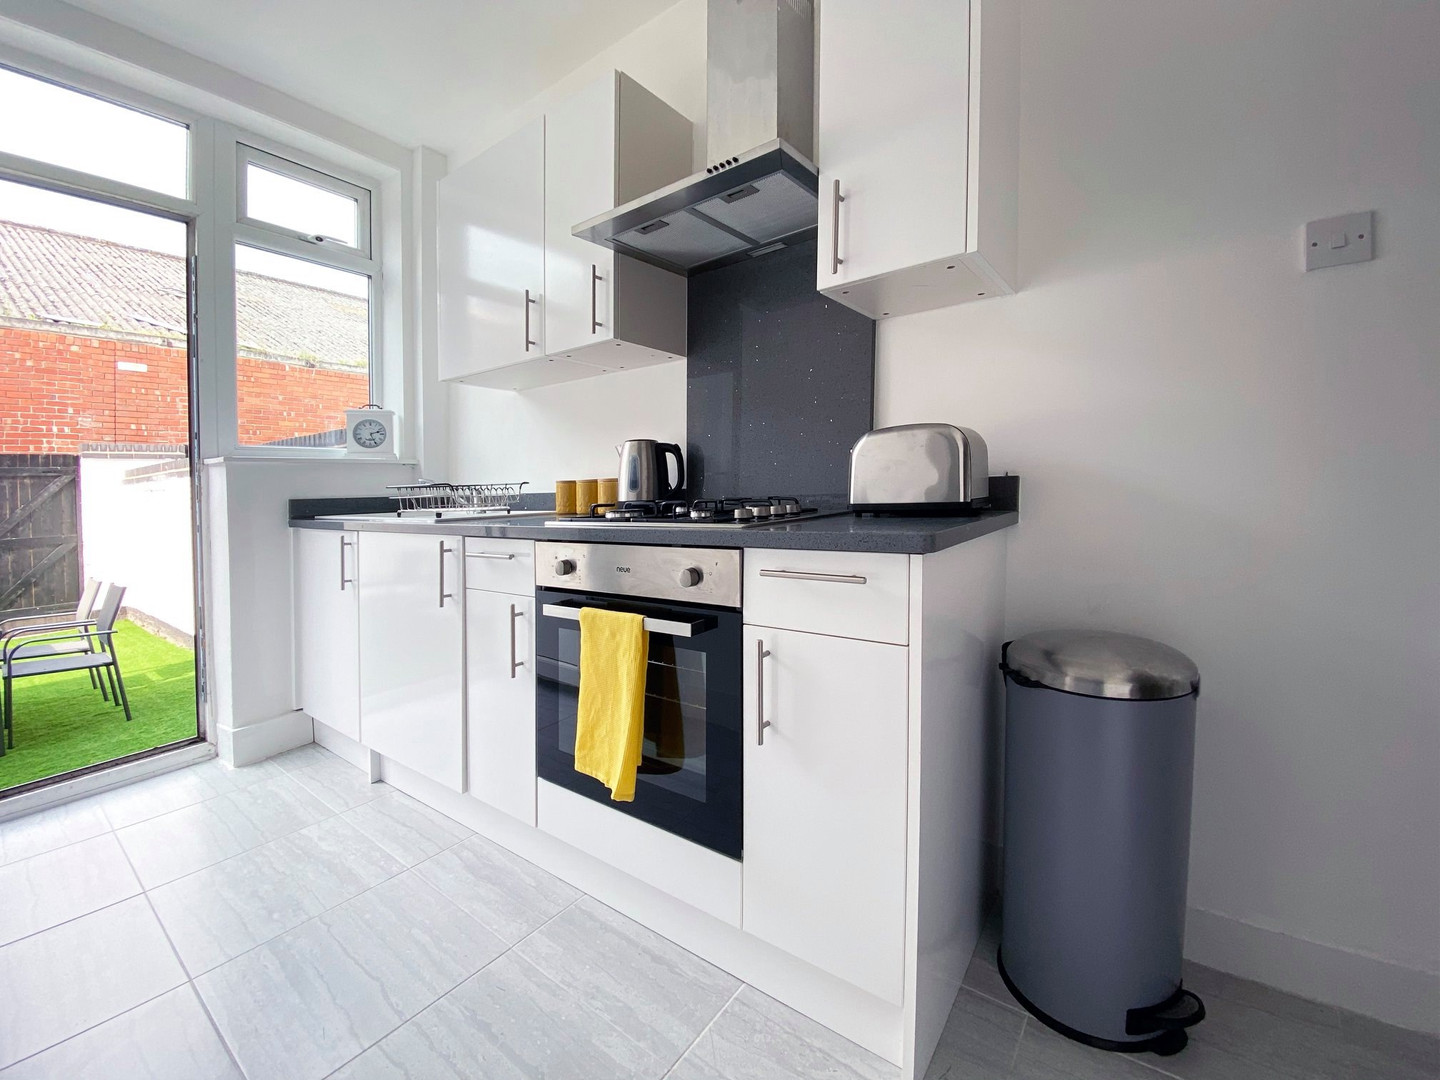 The Baltic Townhouse Apartment Liverpool117808555_790206288456438_75006164236765